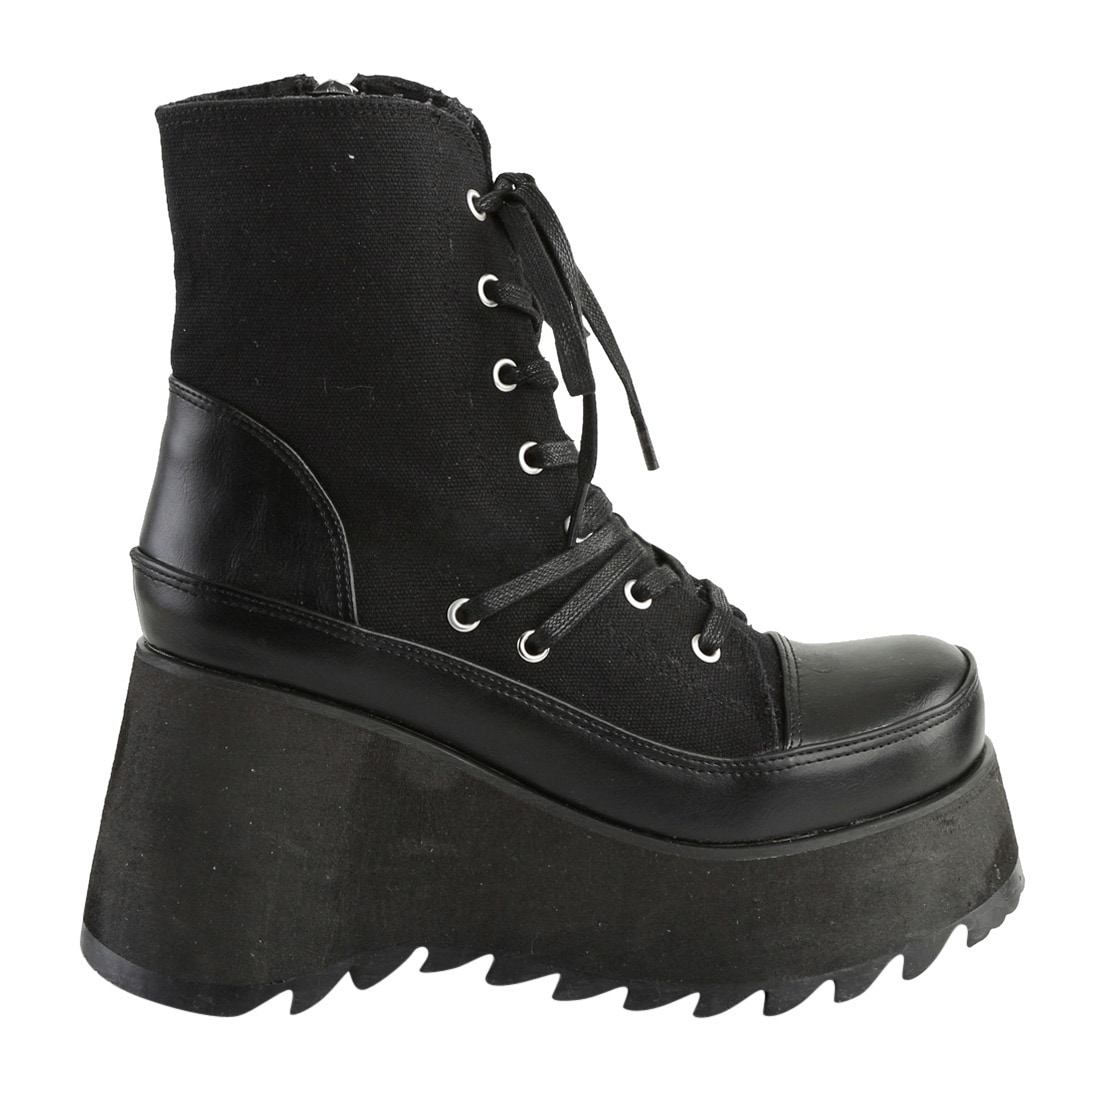 dd56f9e46d Shop Demonia SCENE-50 Women's Platform Lace-Up Side Zip Wedge Heel Ankle  High Boot - Free Shipping Today - Overstock - 17408046